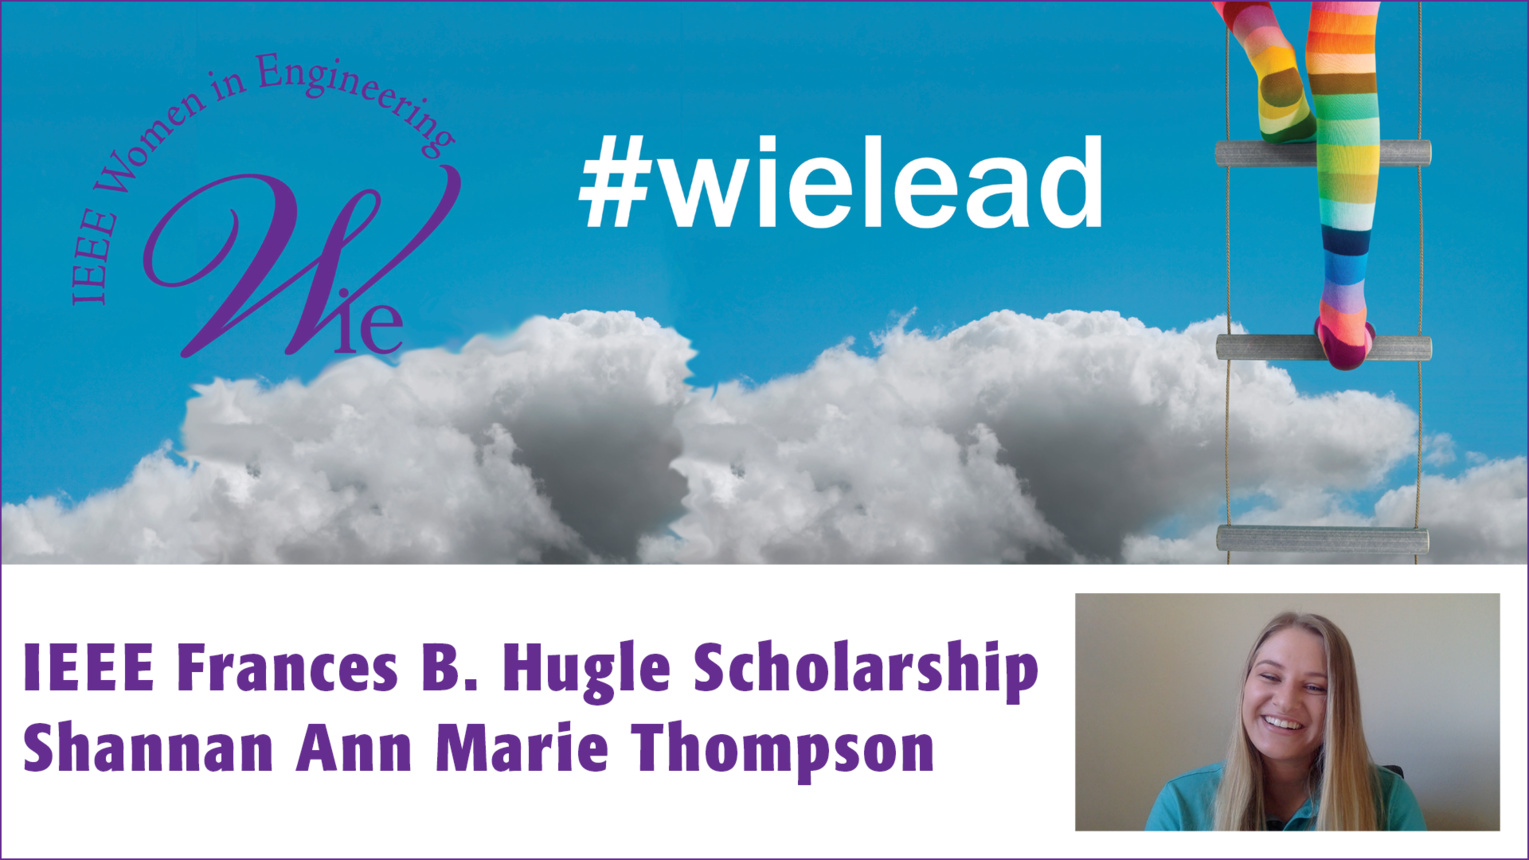 Shannan Thompson - 2018 IEEE Frances B. Hugle Scholarship winner